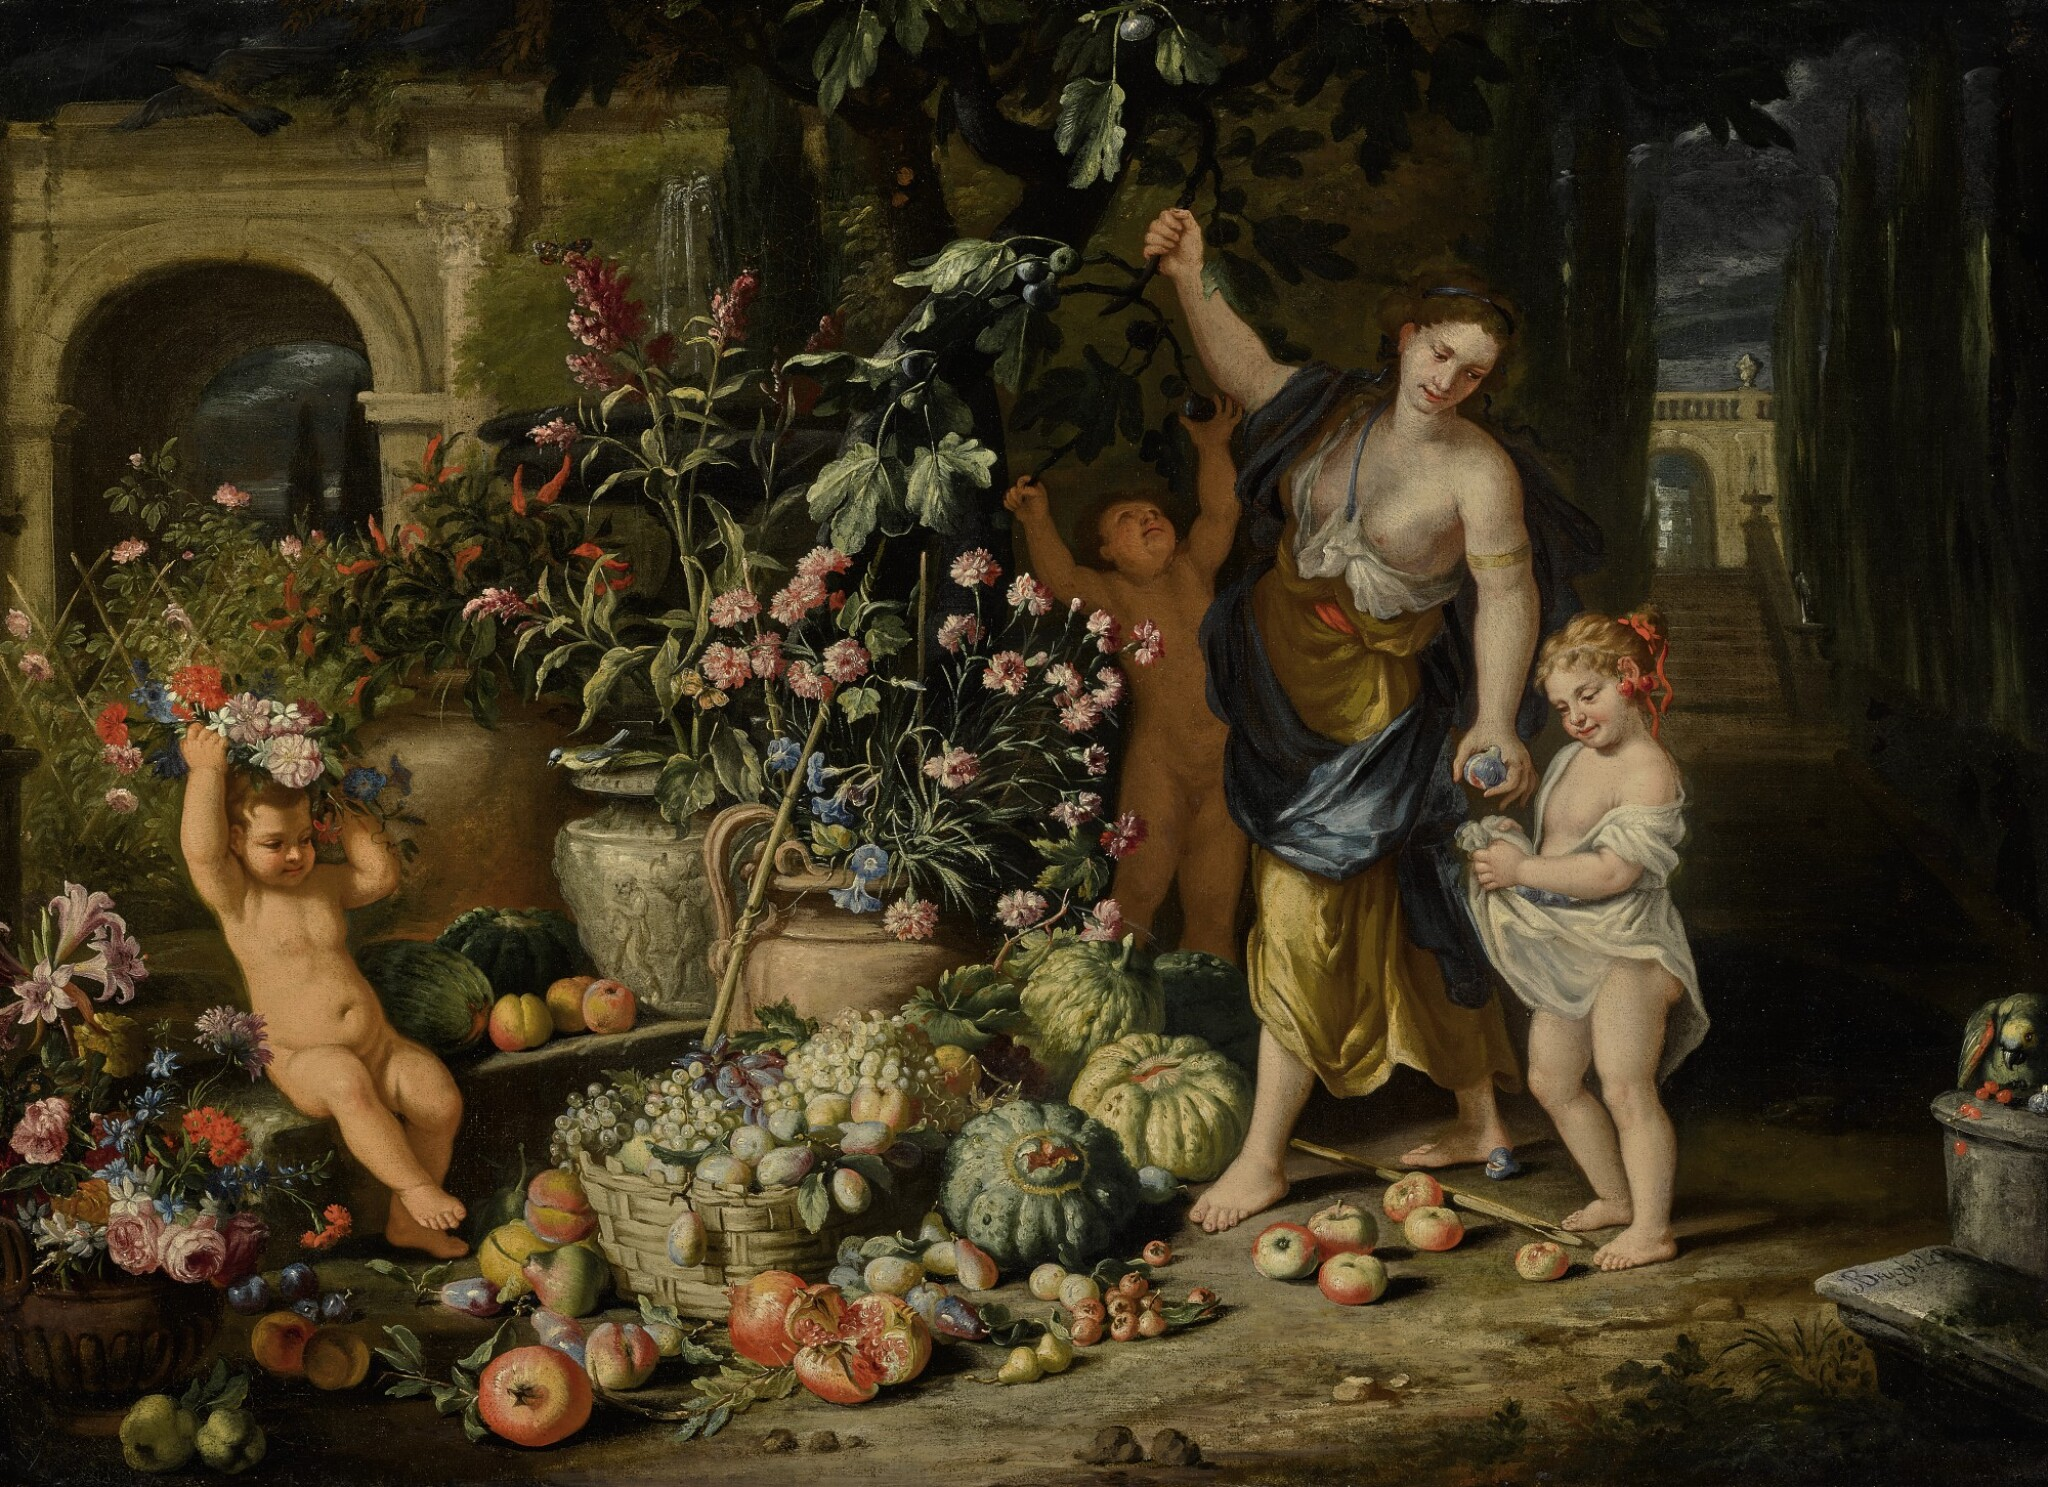 ABRAHAM BRUEGHEL AND NICOLA VACCARO | A YOUNG WOMAN PICKING FIGS WITH THREE CHILDREN IN A TERRACED GARDEN, WITH URNS OF CARNATIONS, MORNING GLORY, AND OTHER FLOWERS, AND BASKET OF GRAPES AND OTHER FRUITS NEARBY